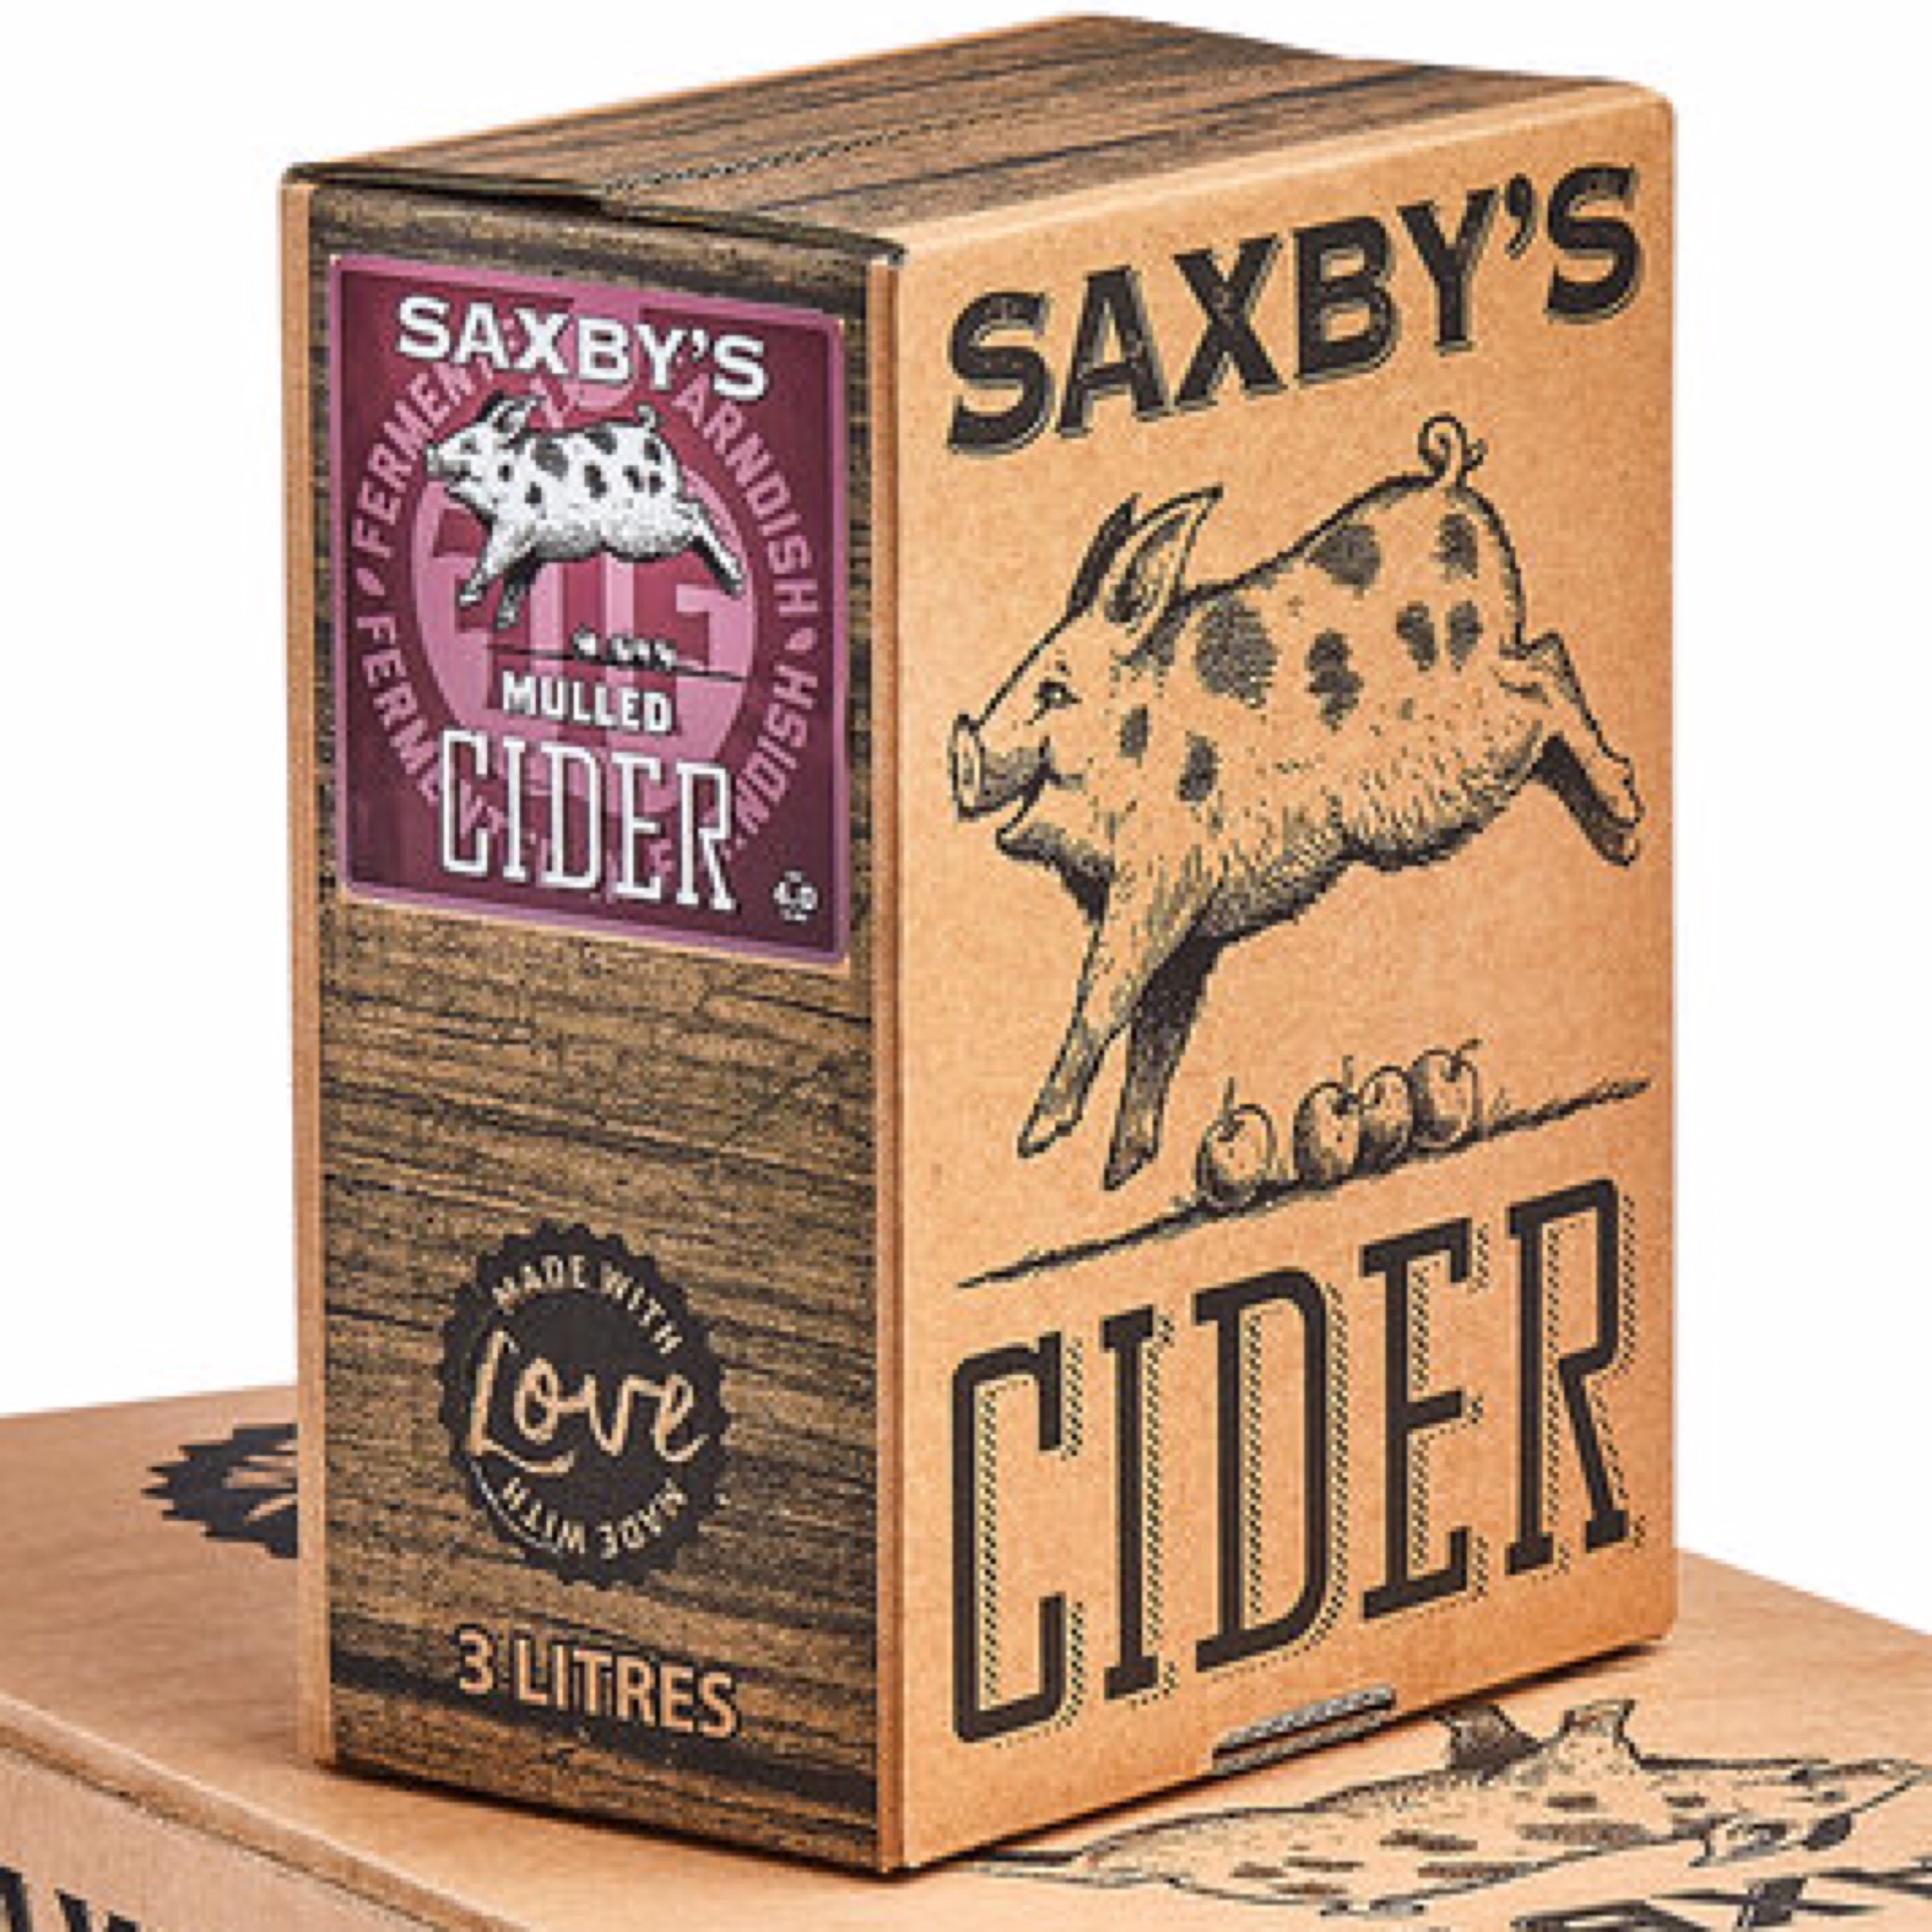 Saxby's Mulled Cider 4% 500ml & 3litres Bag In The Box